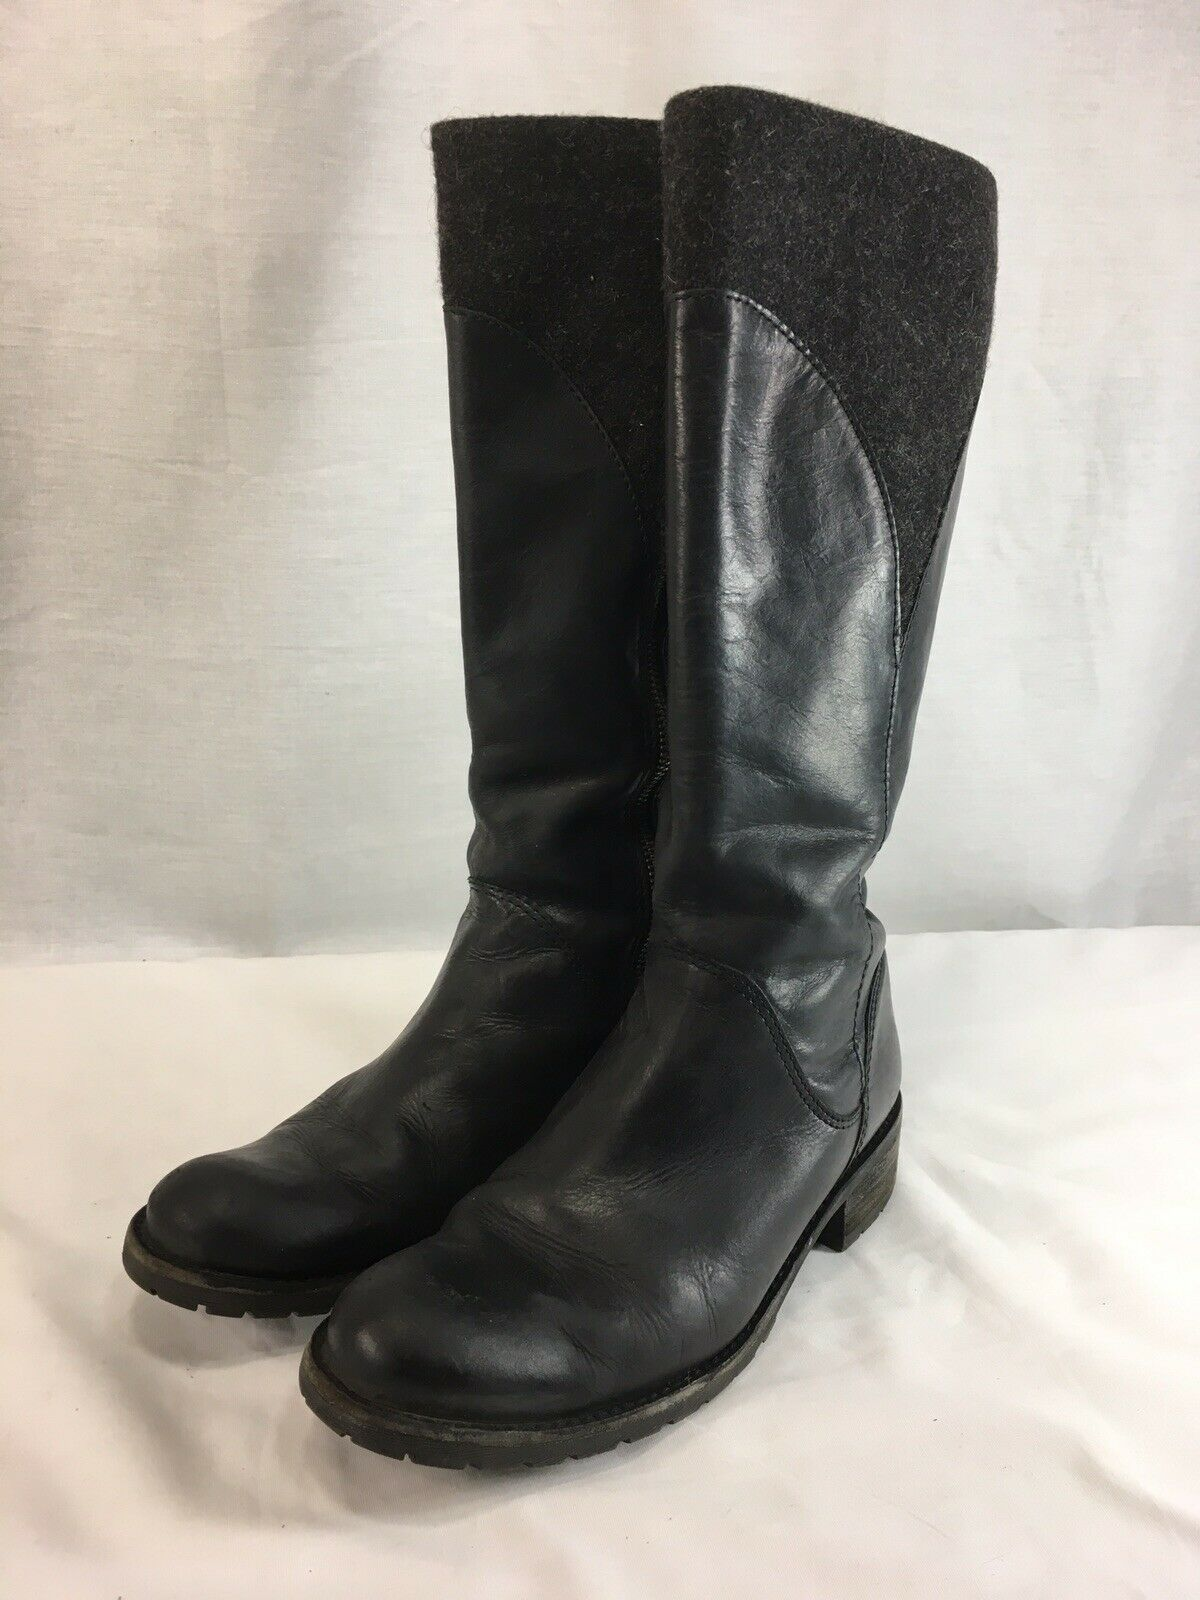 LL Bean Riding Boots Womens 7 M Black Leather Wool 15  Tall Side Zip